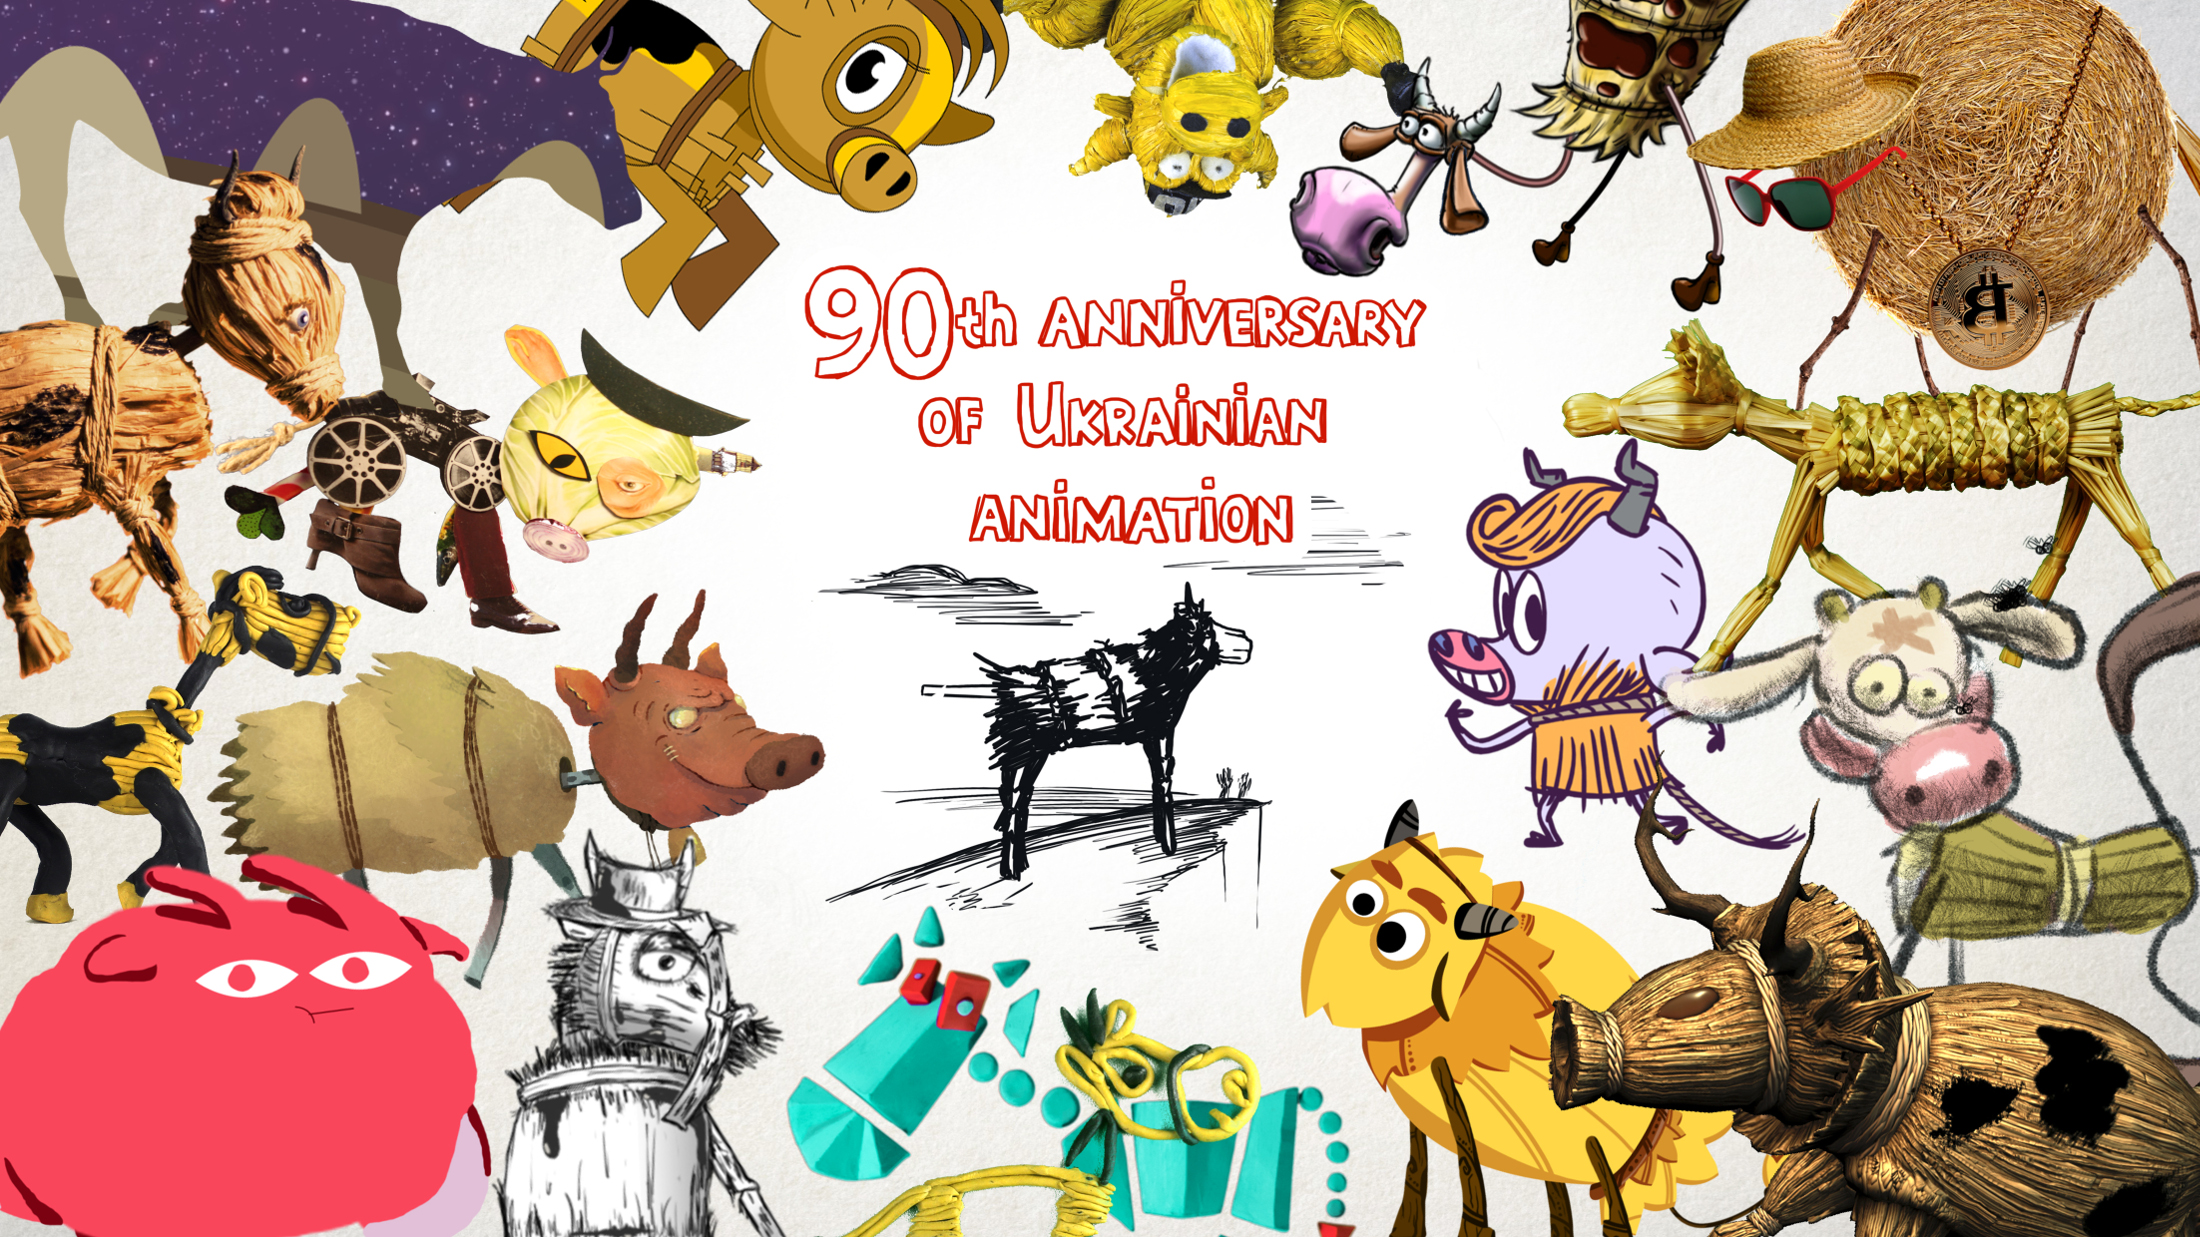 Reviving the First Ukrainian Cartoon Character: 90 Years of Ukrainian Animation